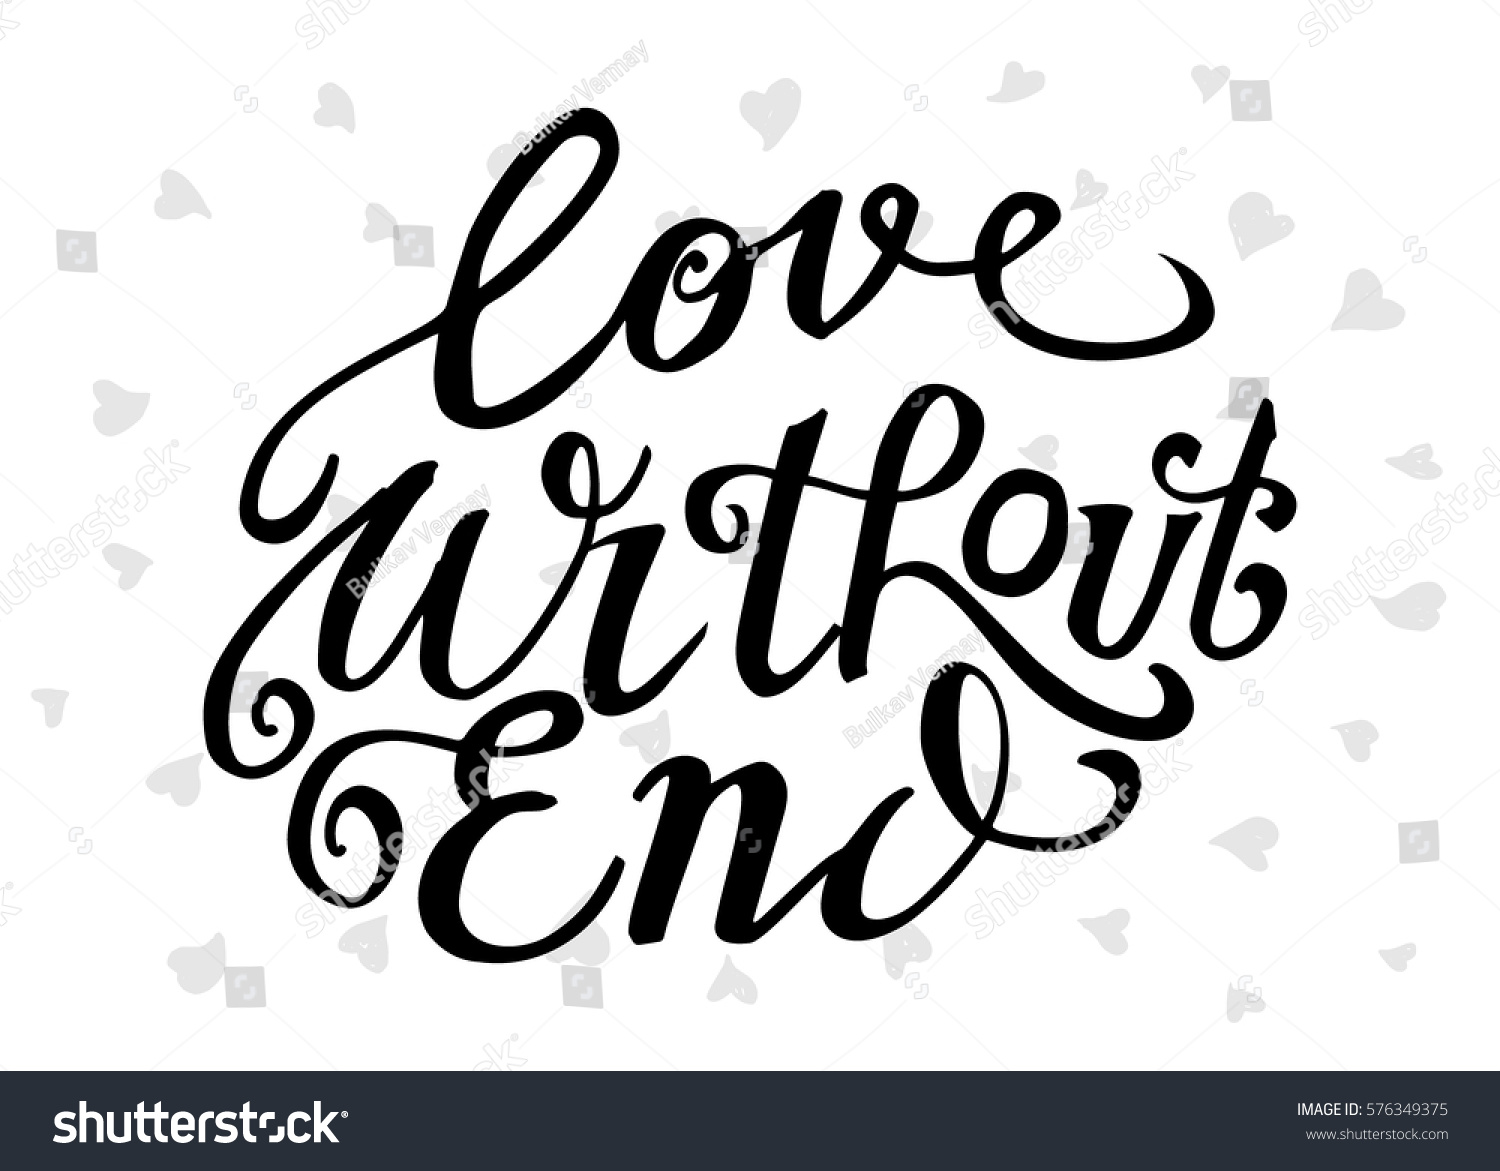 Love without end hand lettered quote stock vector